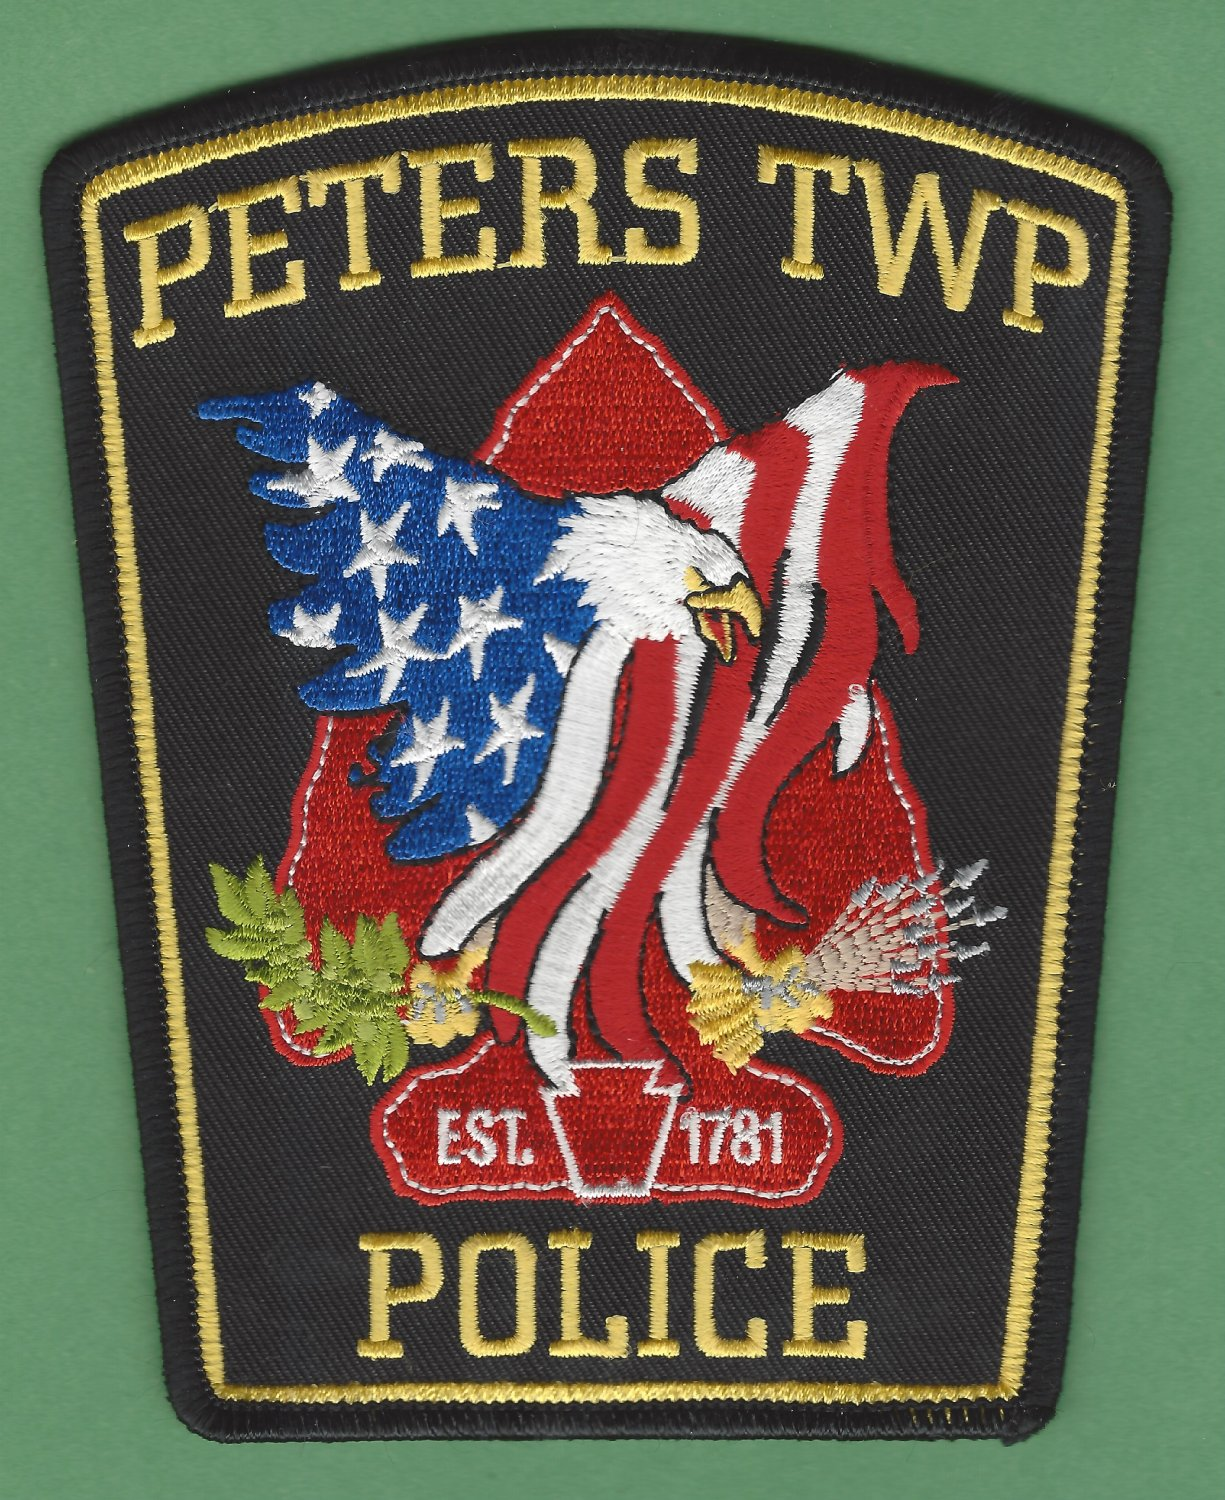 Peters Township Pennsylvania Police Patch